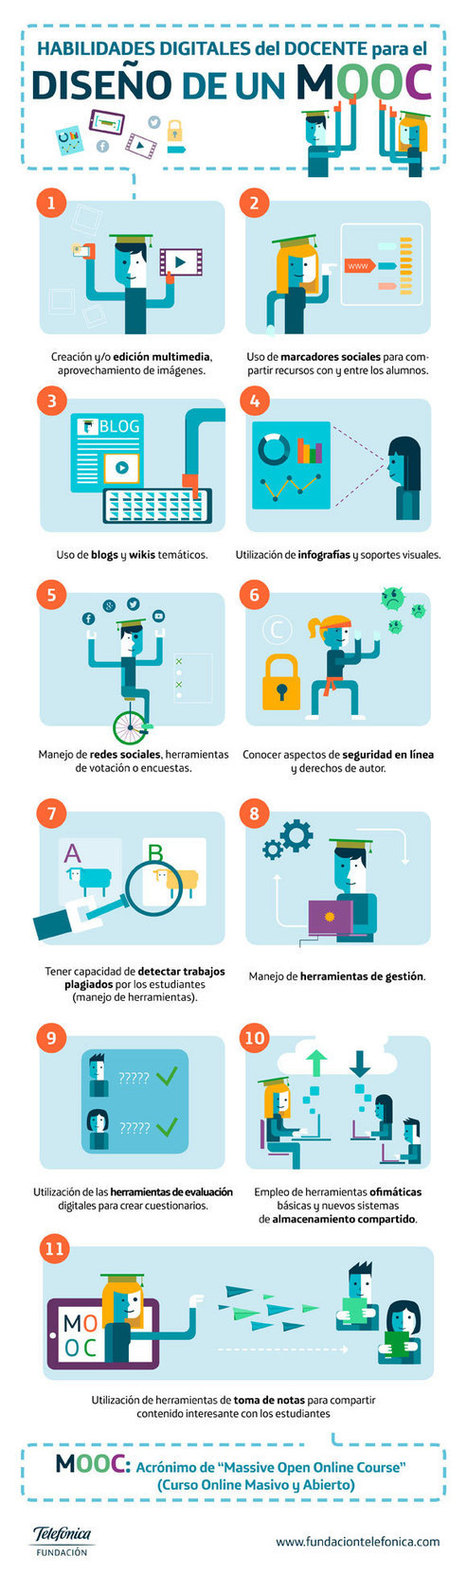 ¿Qué competencias digitales necesitas para diseñar un MOOC? | E-learning, Moodle y la web 2.0 | Scoop.it